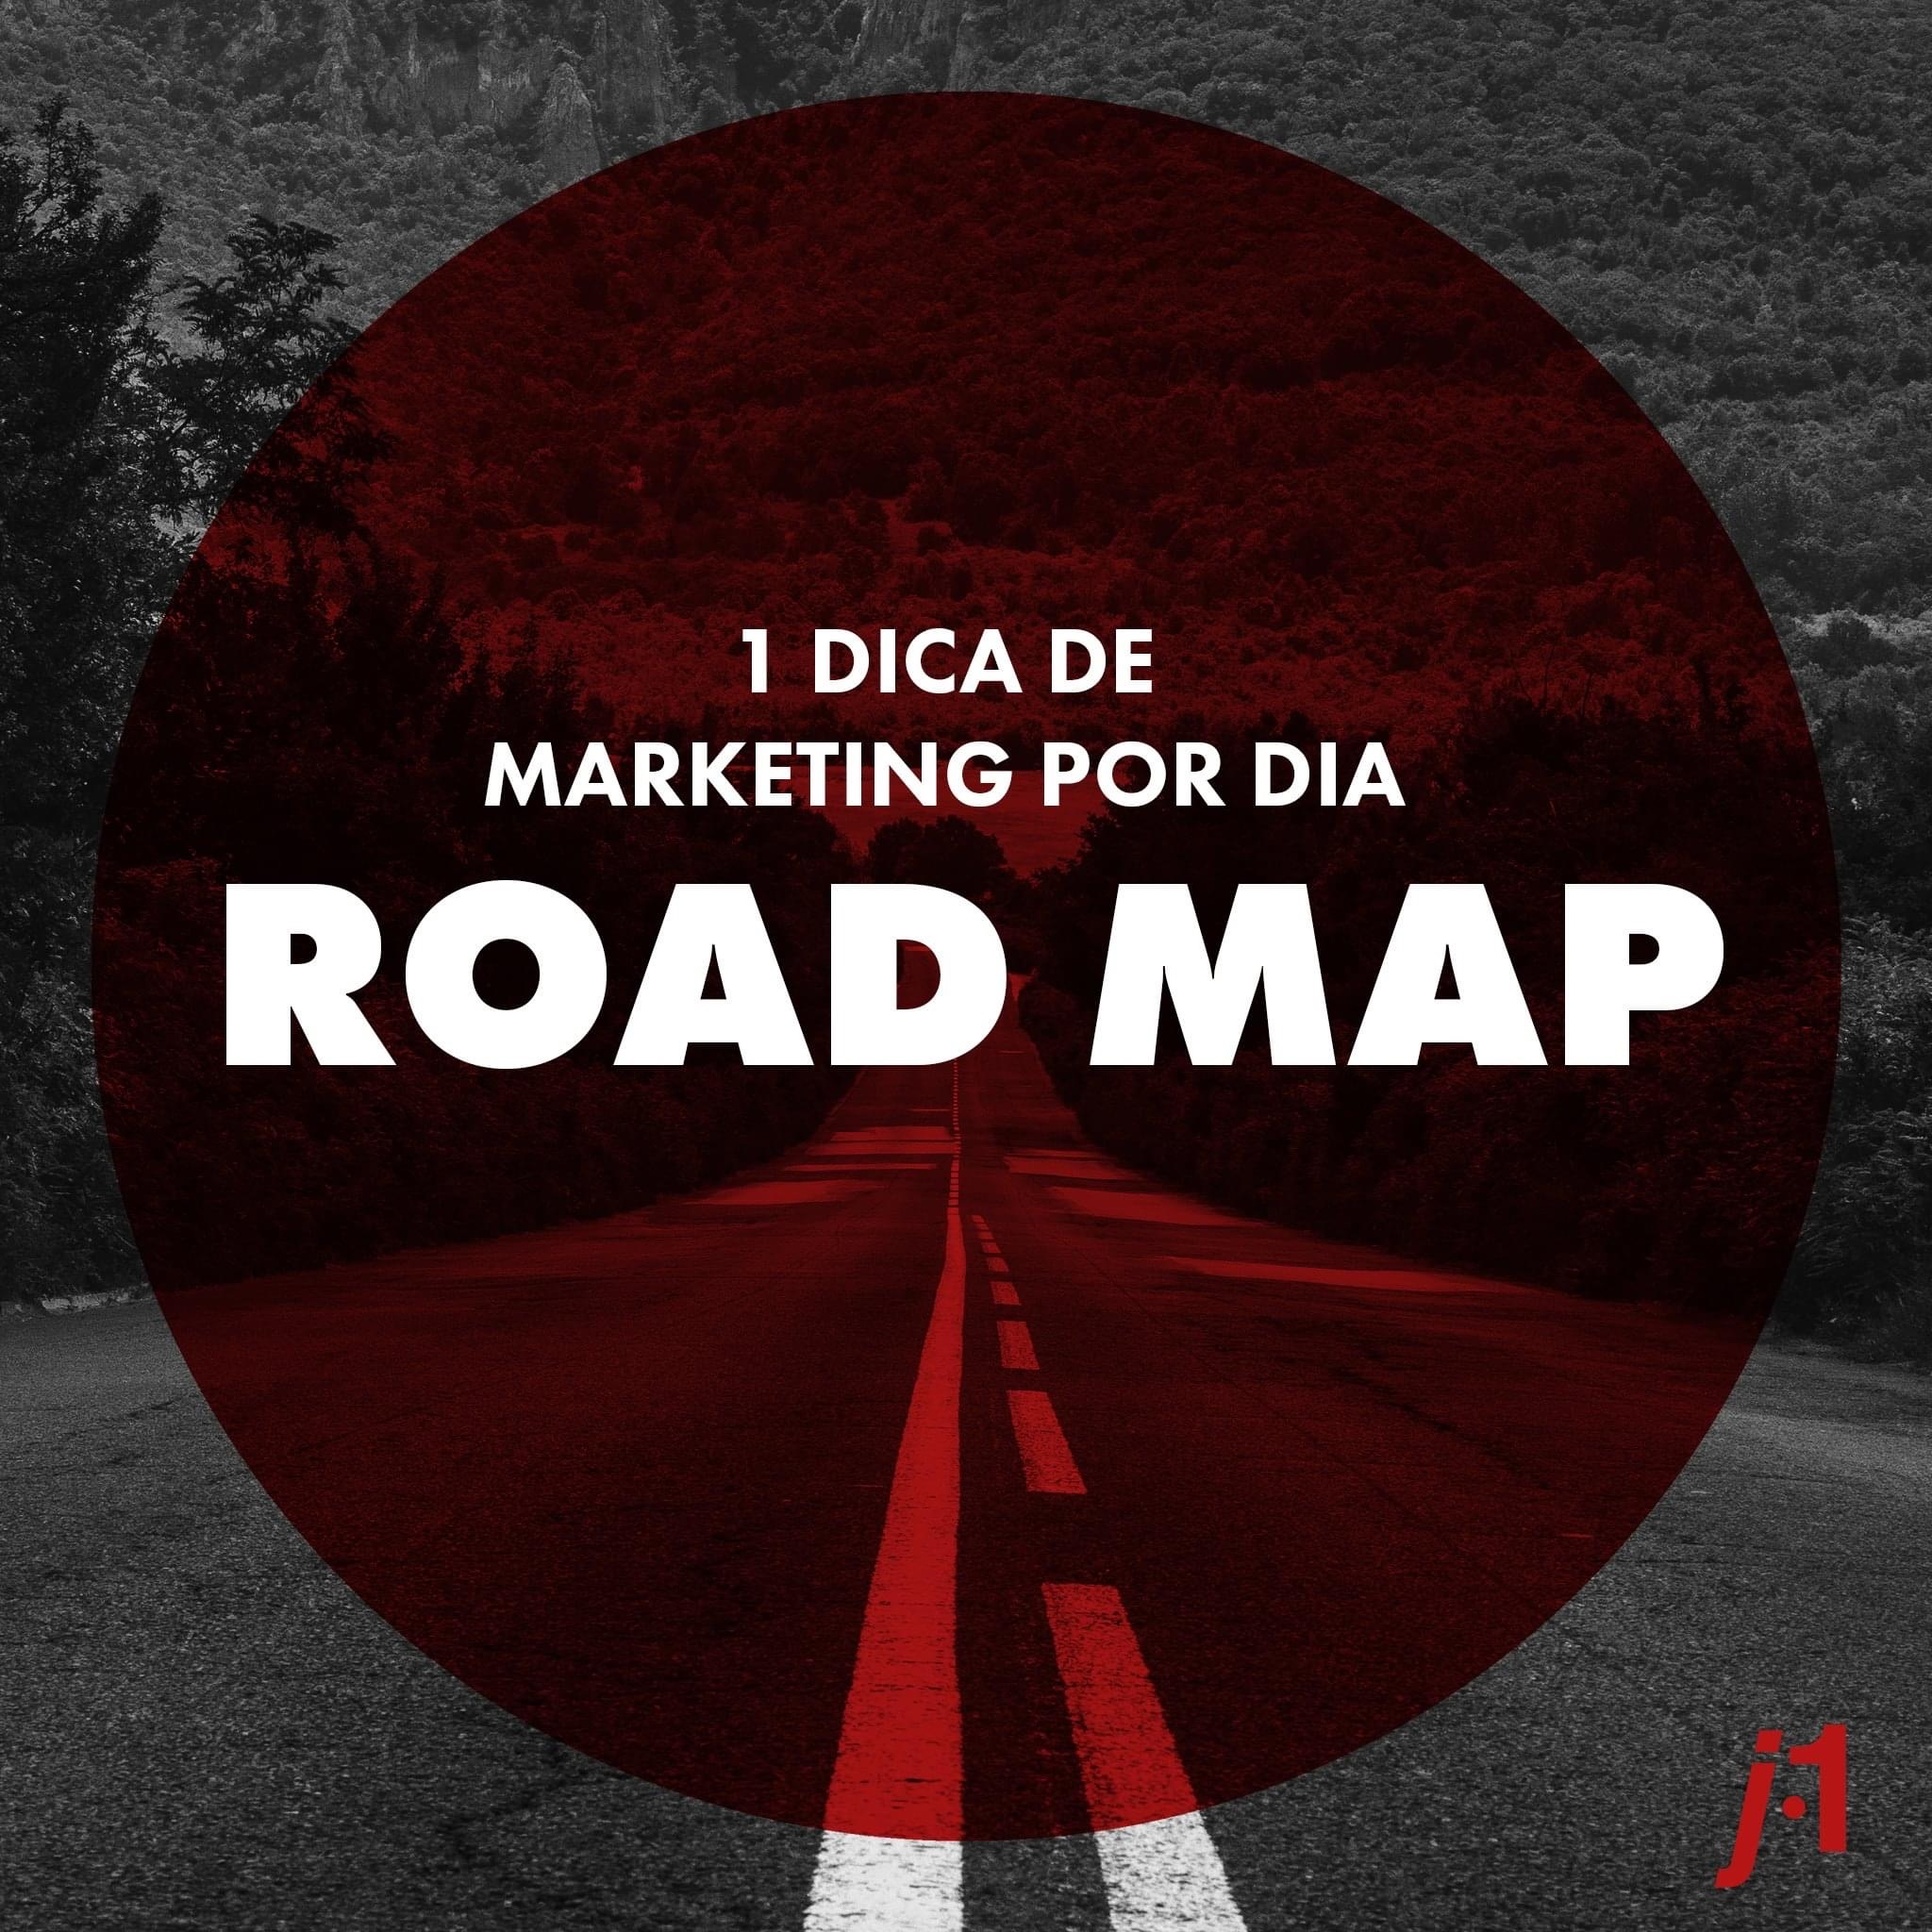 Dicas de Marketing - Roadmap